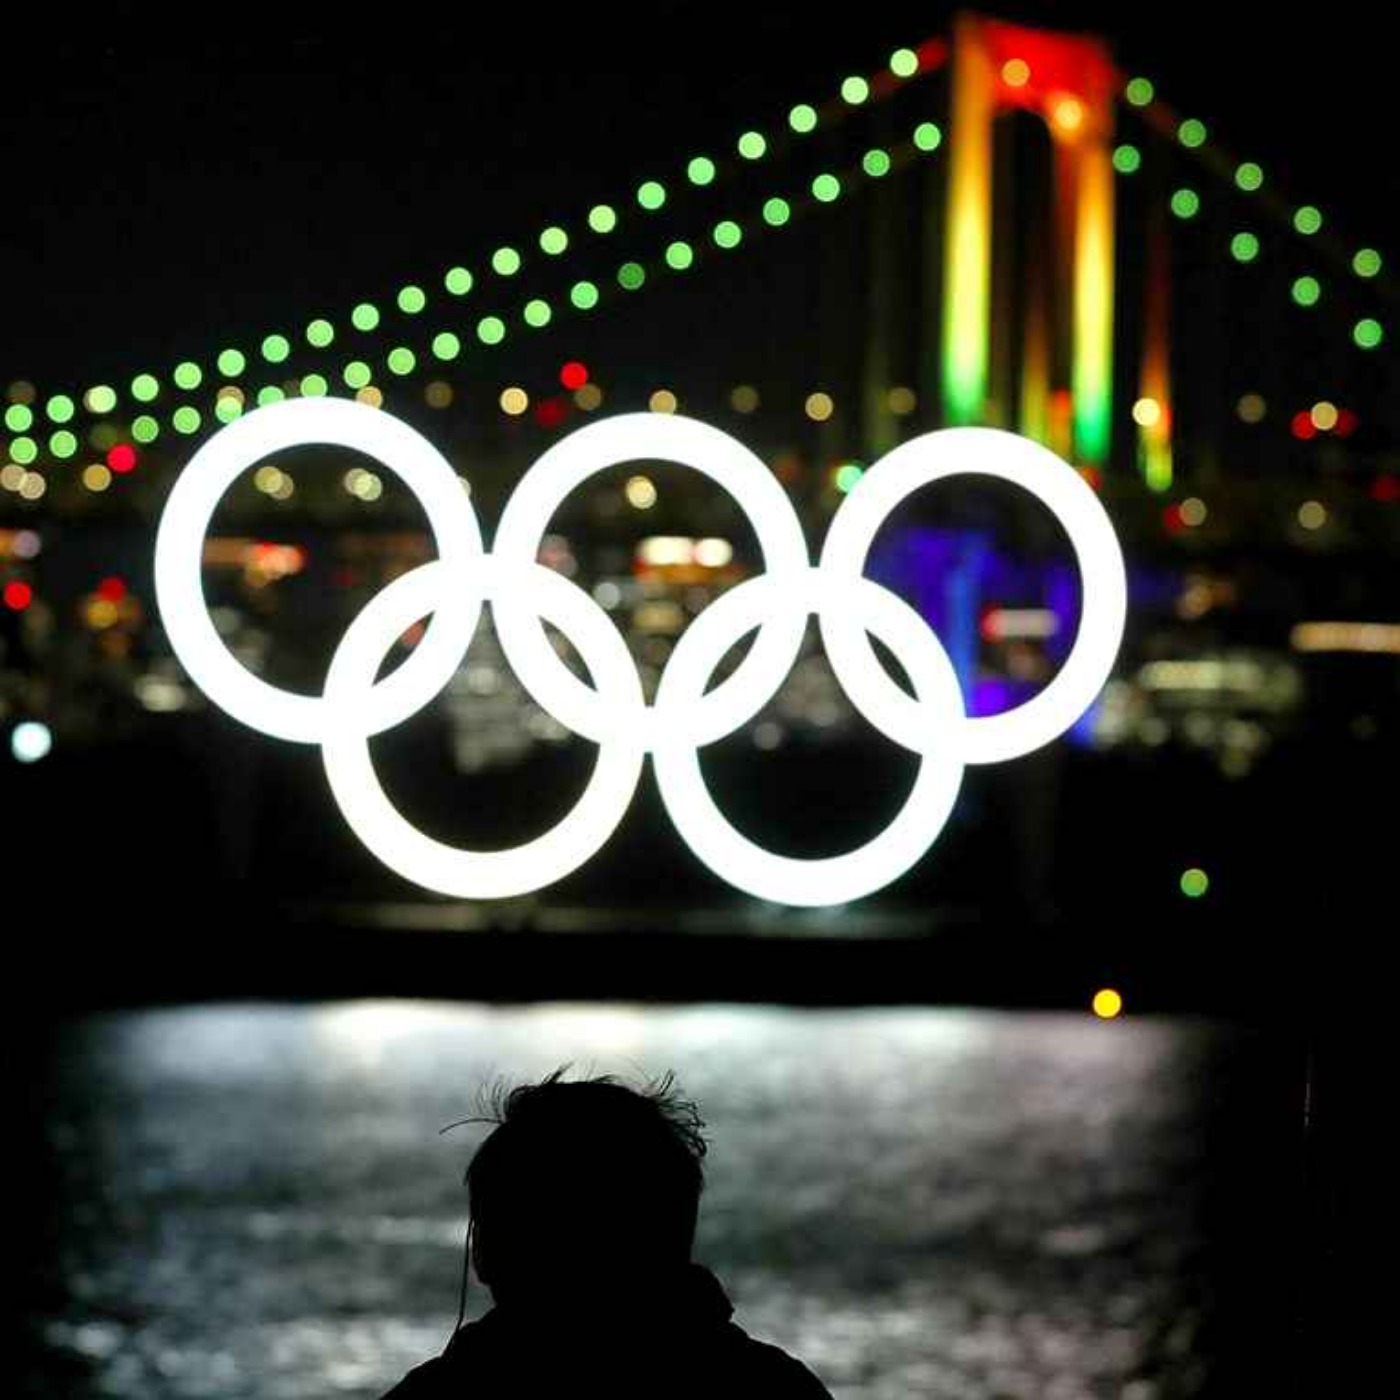 Is It Time to Cancel the Olympics? | Jules Boykoff